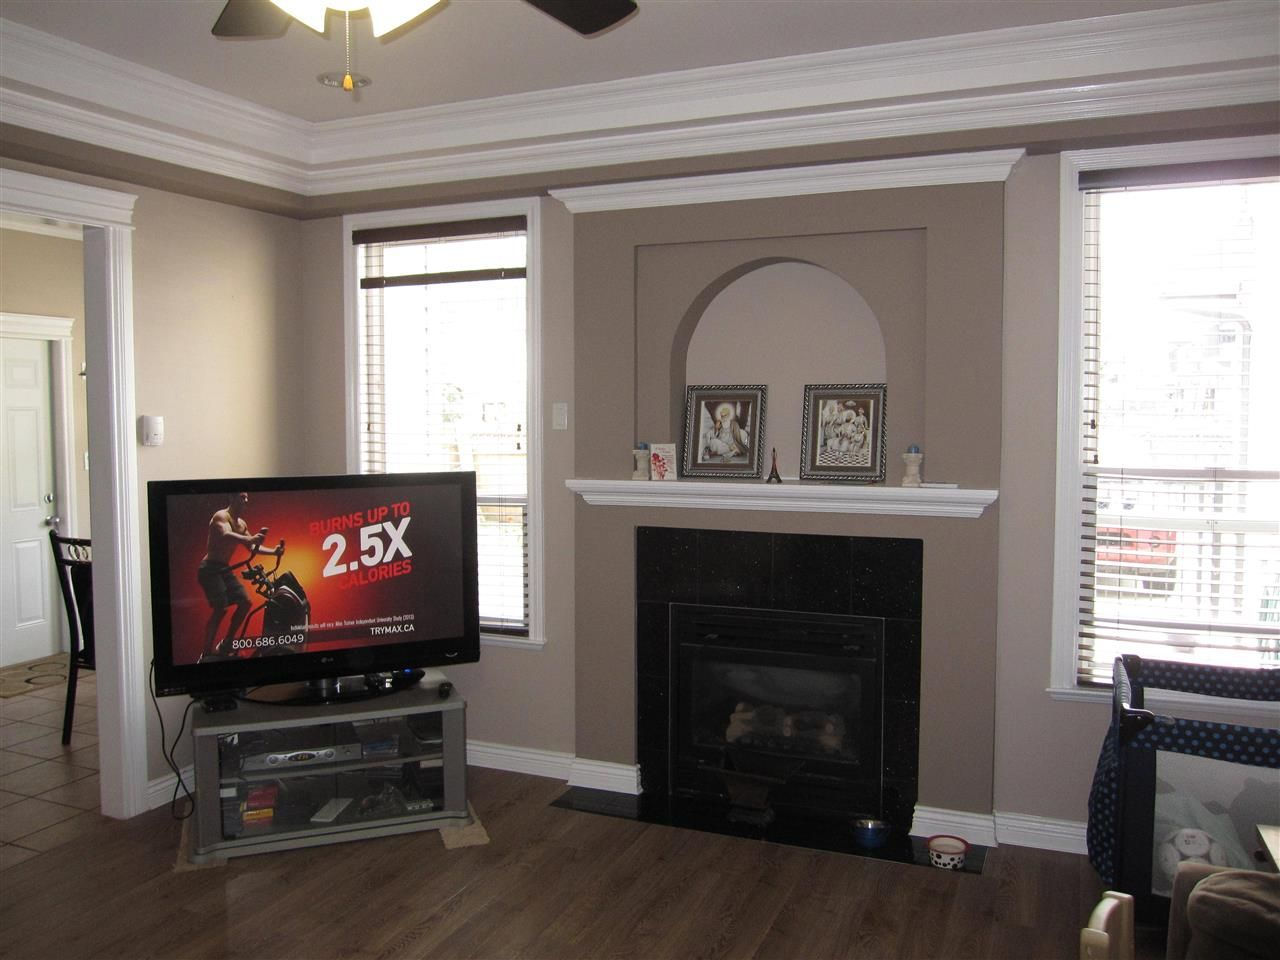 Photo 4: Photos: 12239 240 Street in Maple Ridge: East Central House for sale : MLS®# R2017770